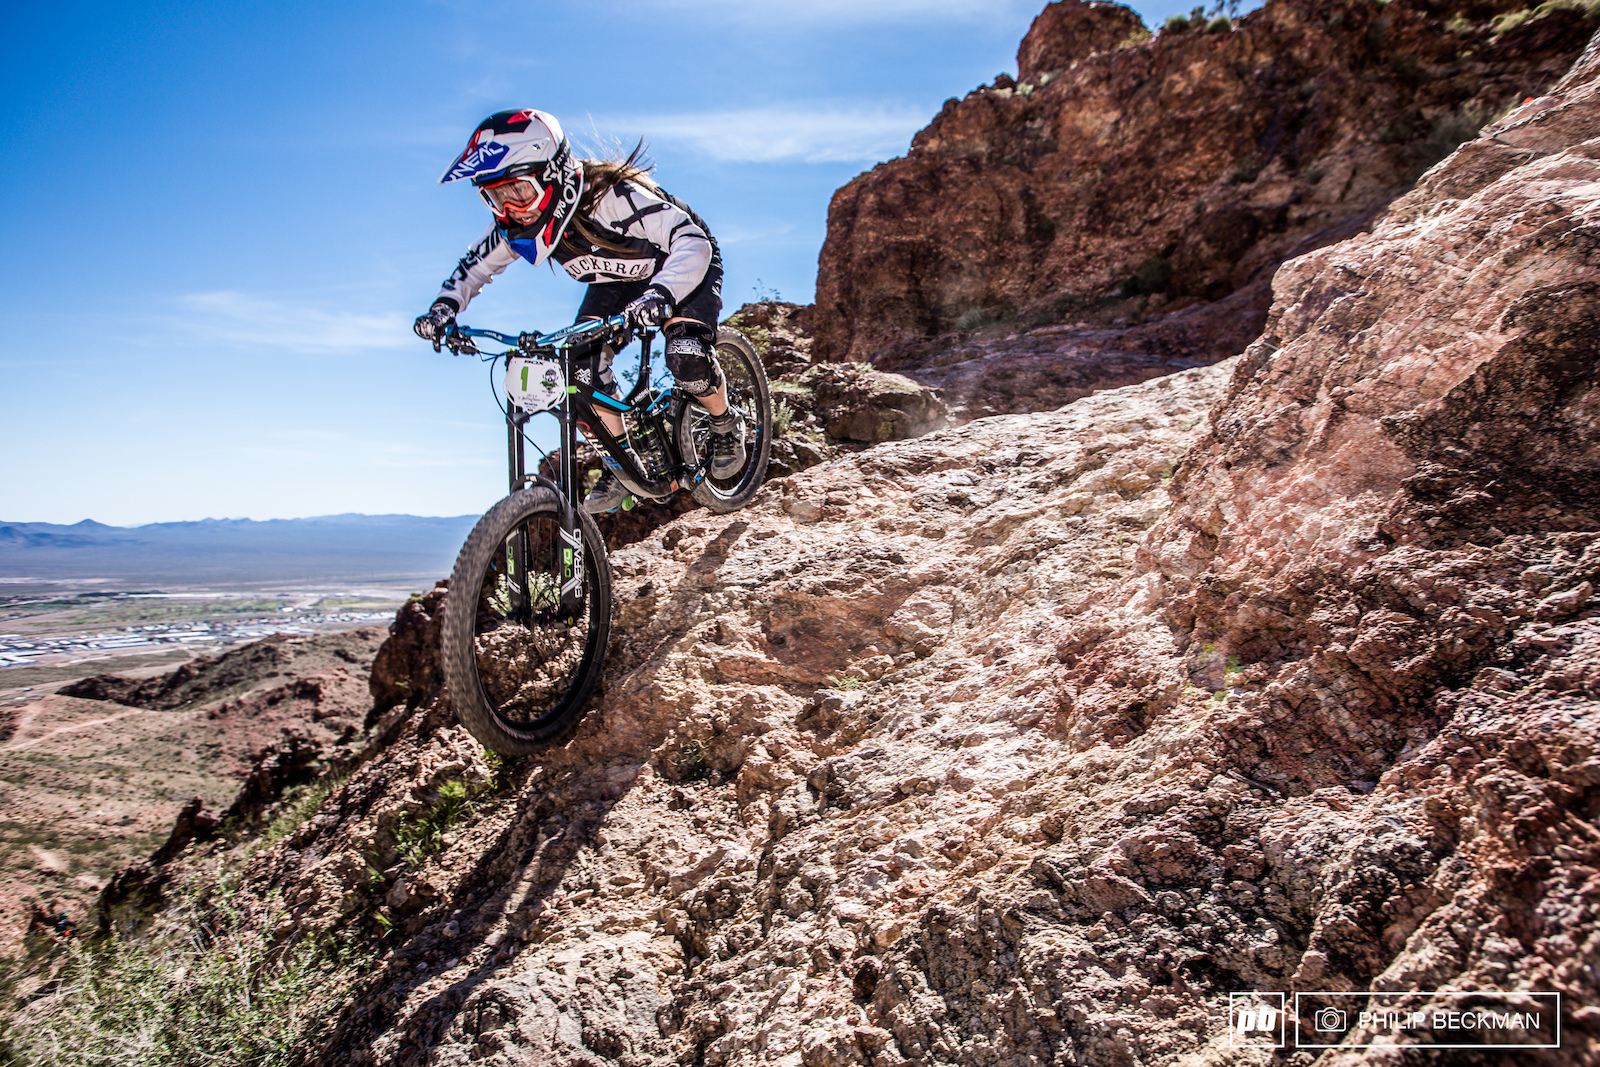 Reigning Pro GRT champion Samantha Kingshill College Cyclery Truckerco Posse warms up on Friday. On Sunday she would capture her third Bootleg victory in three tries during the 2017 DVO Winter Gravity Series.